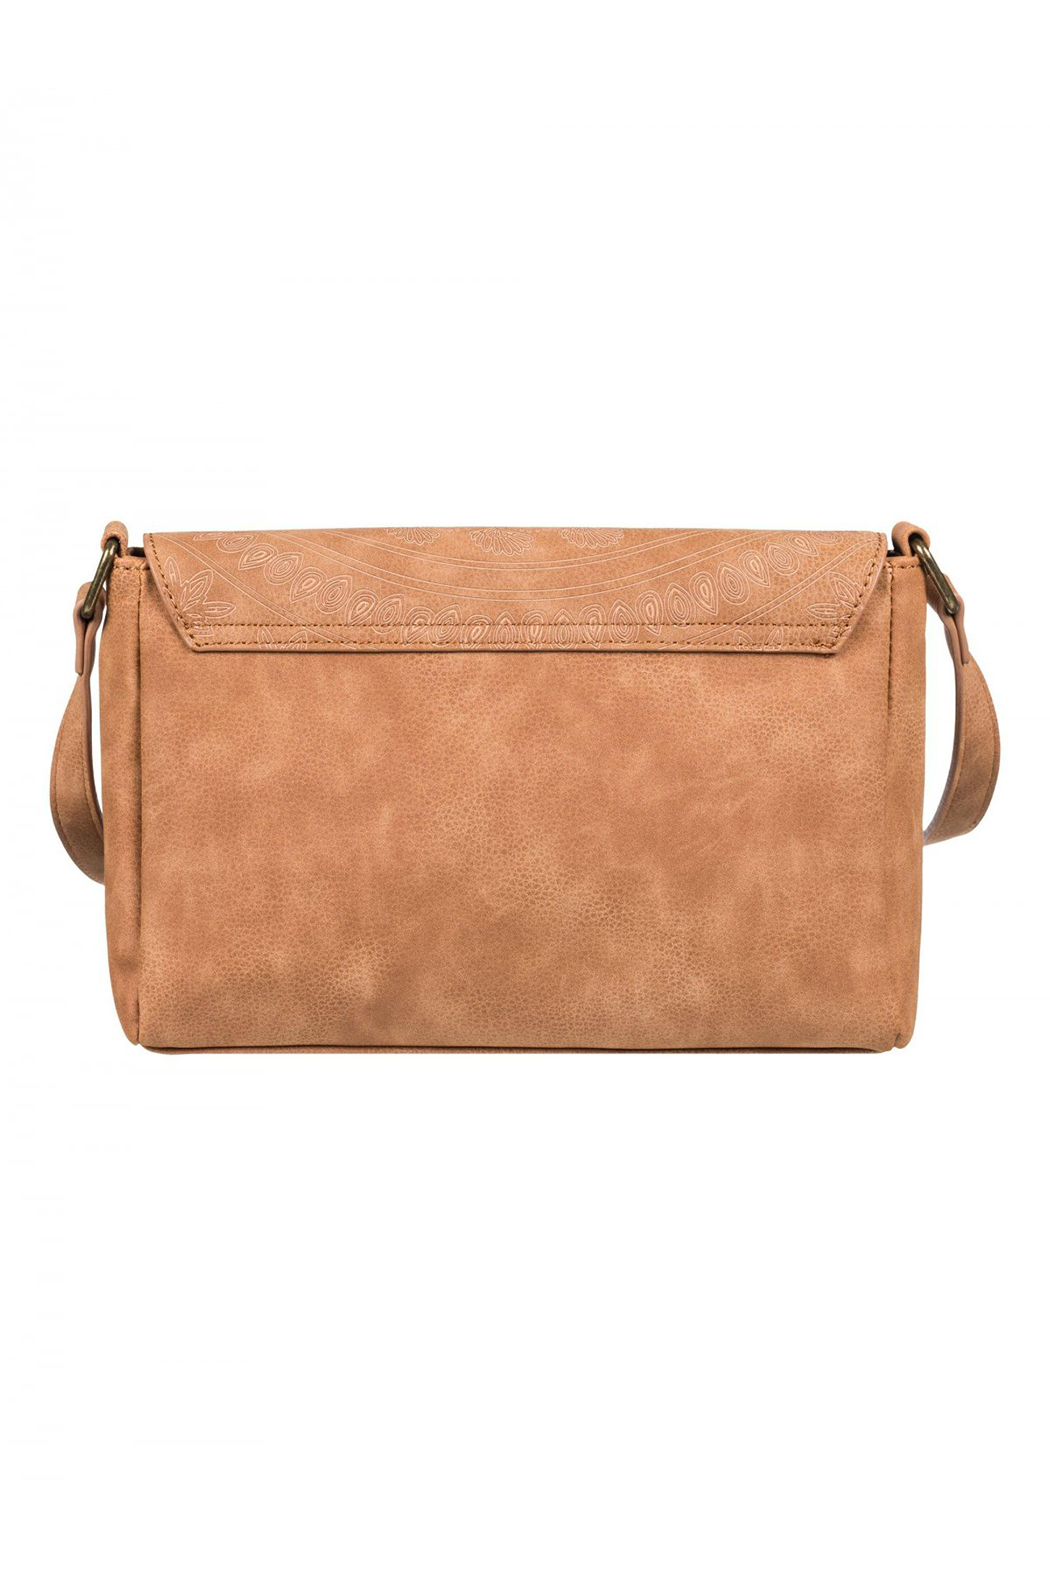 Roxy Sunset Road Small Leather Purse - Front Full Image